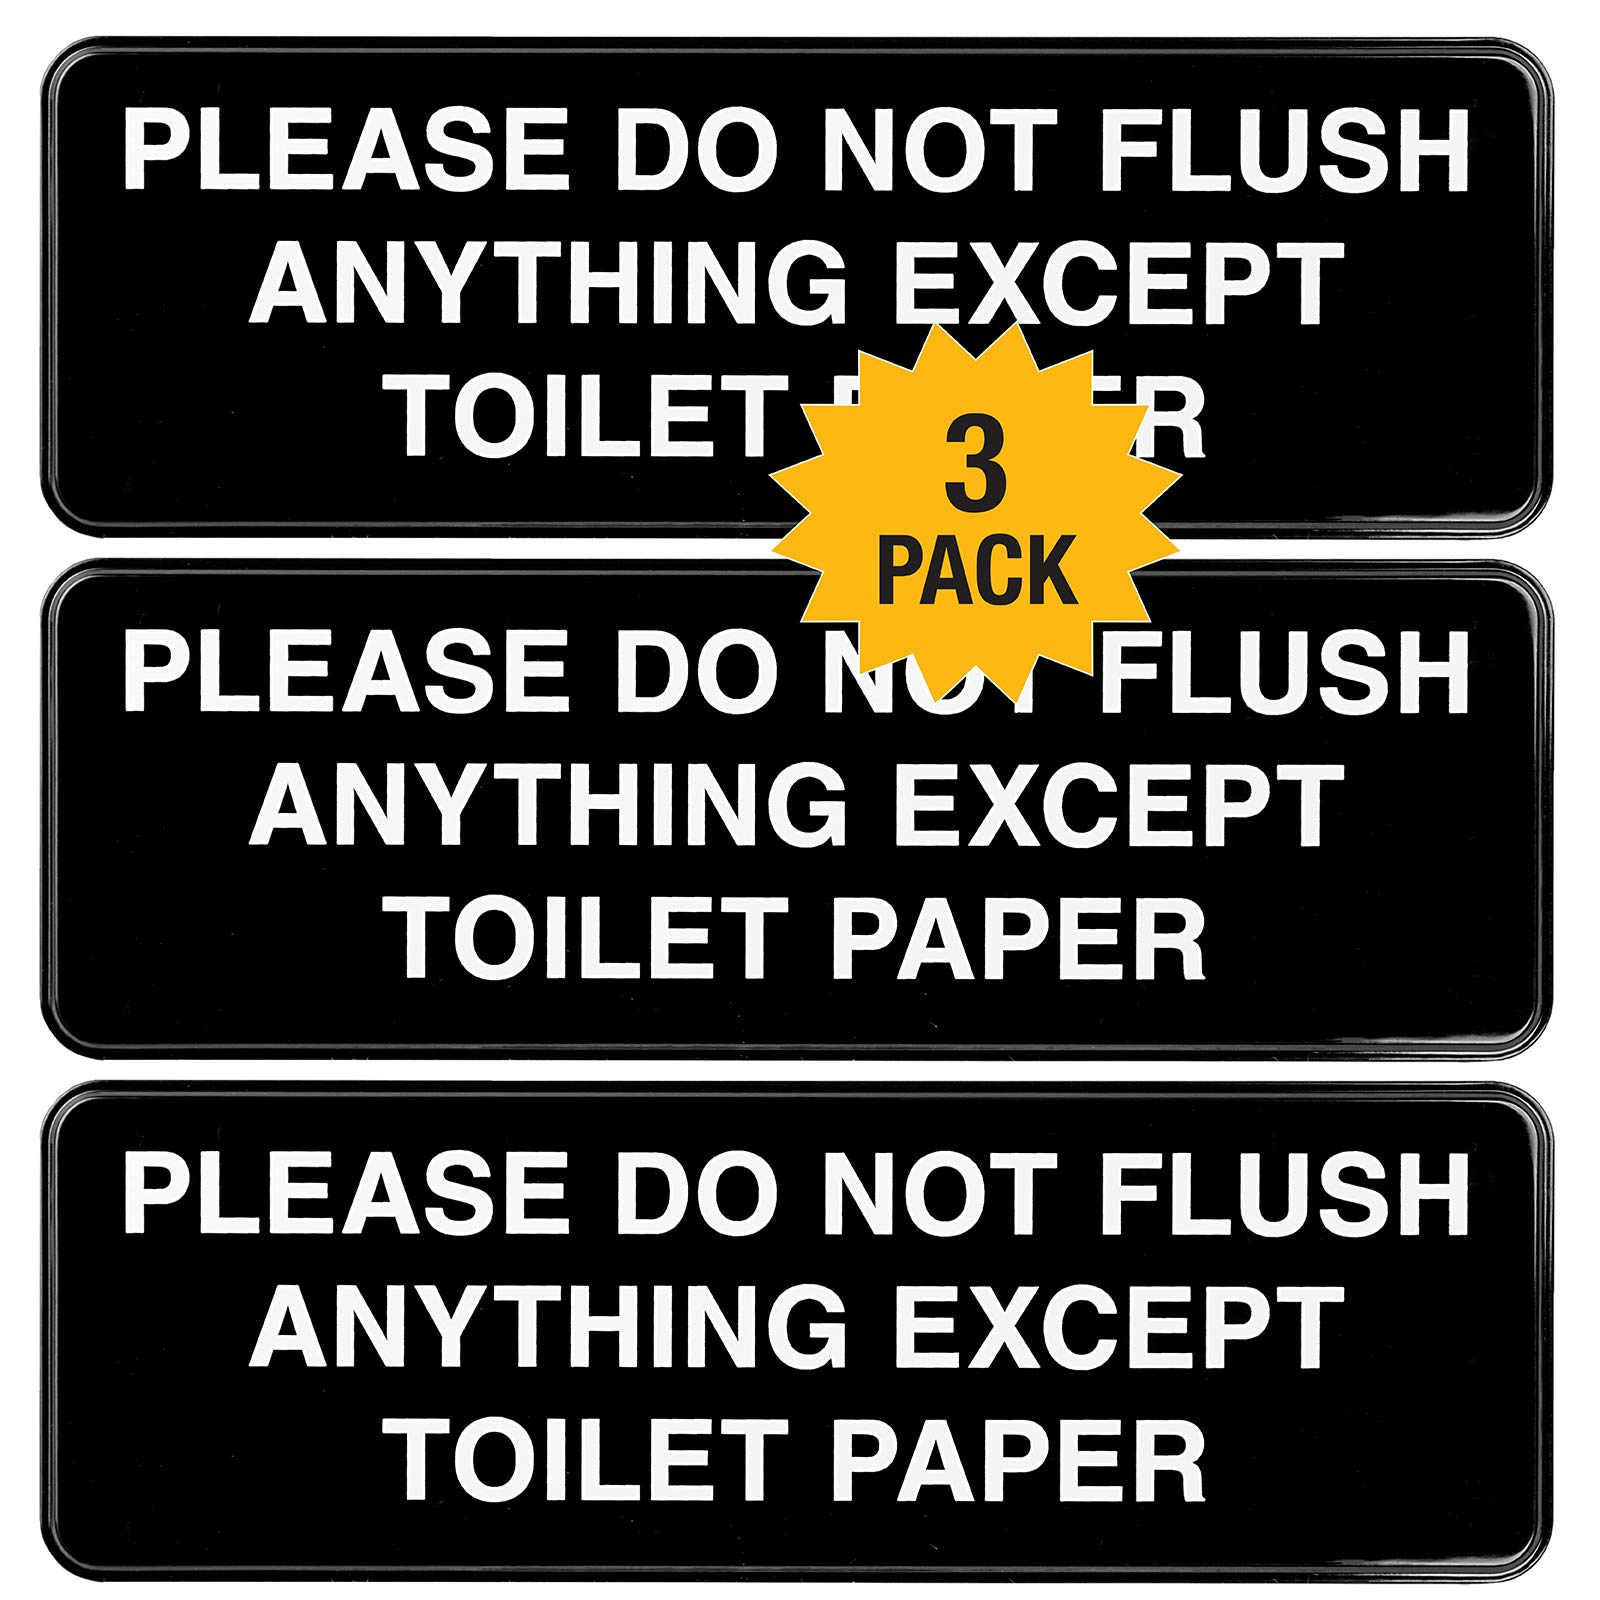 """Please Do Not Flush Paper Towels or Femine Products in Toilet Sign: Easy to Mount Informative Plastic Sign with Symbols 9""""x3"""", Pack of 3 (Black)"""